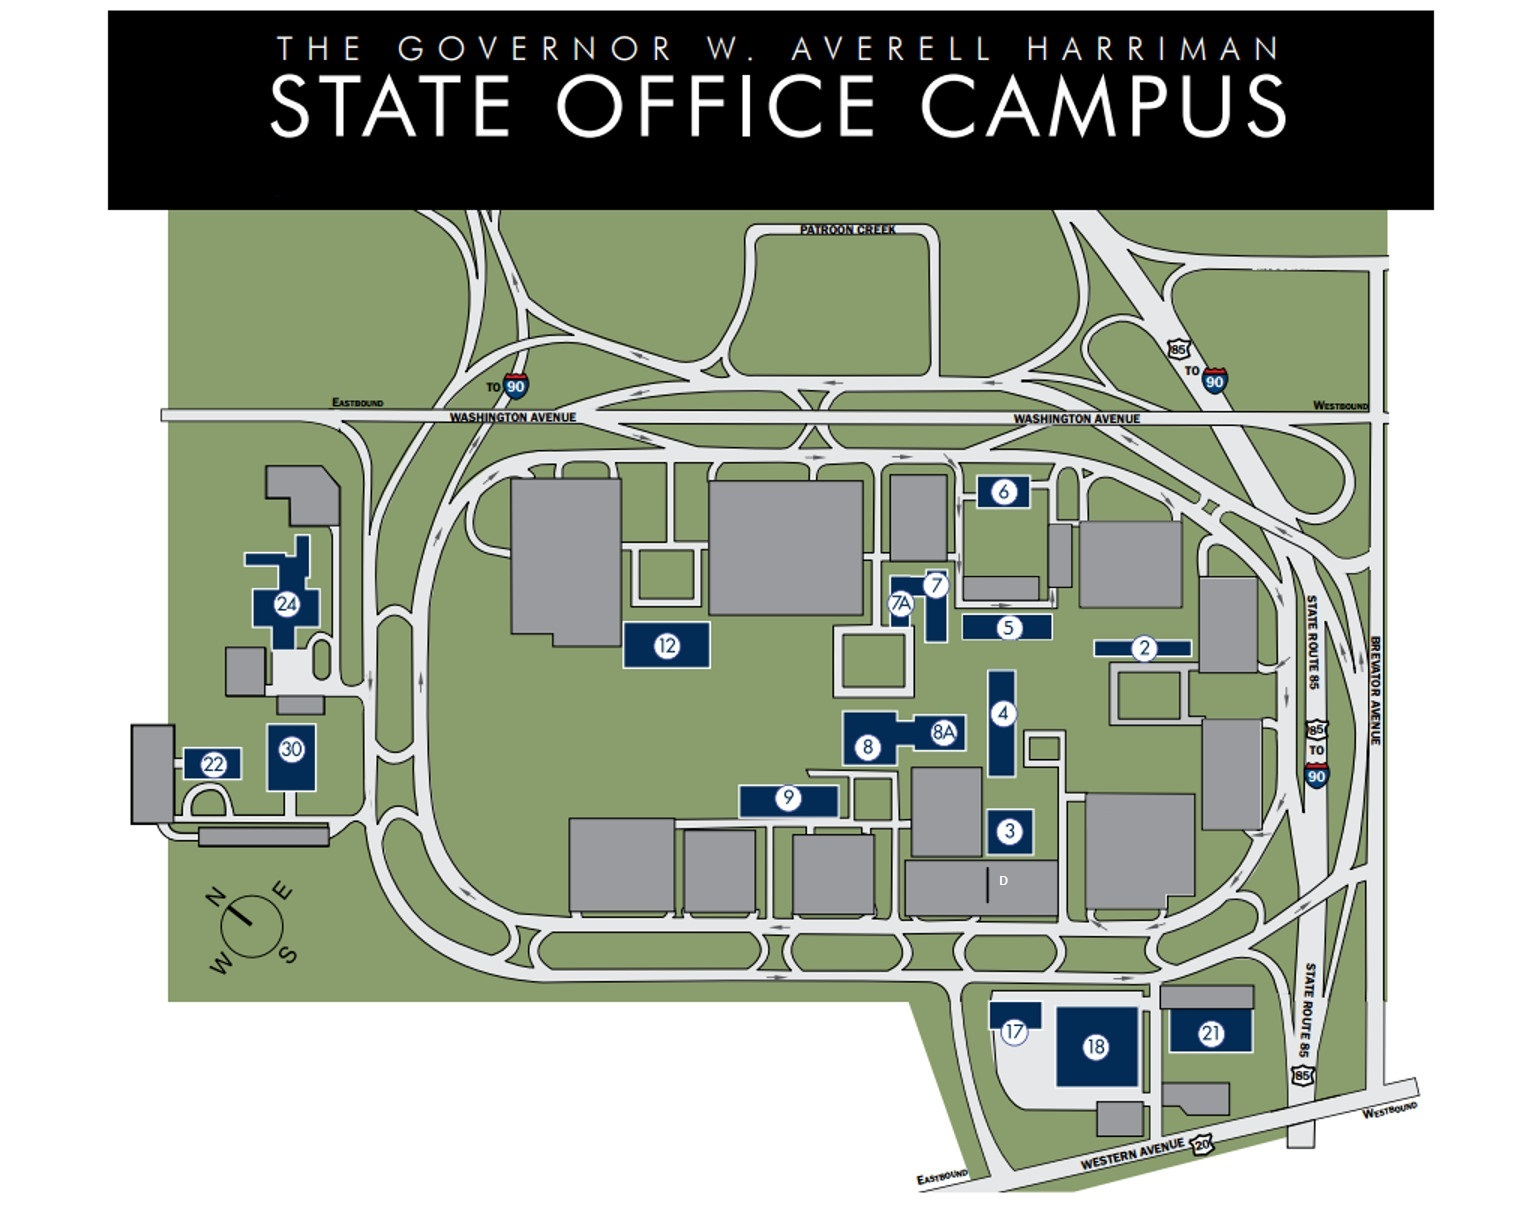 harriman state campus map W Averell Harriman State Office Campus Map harriman state campus map